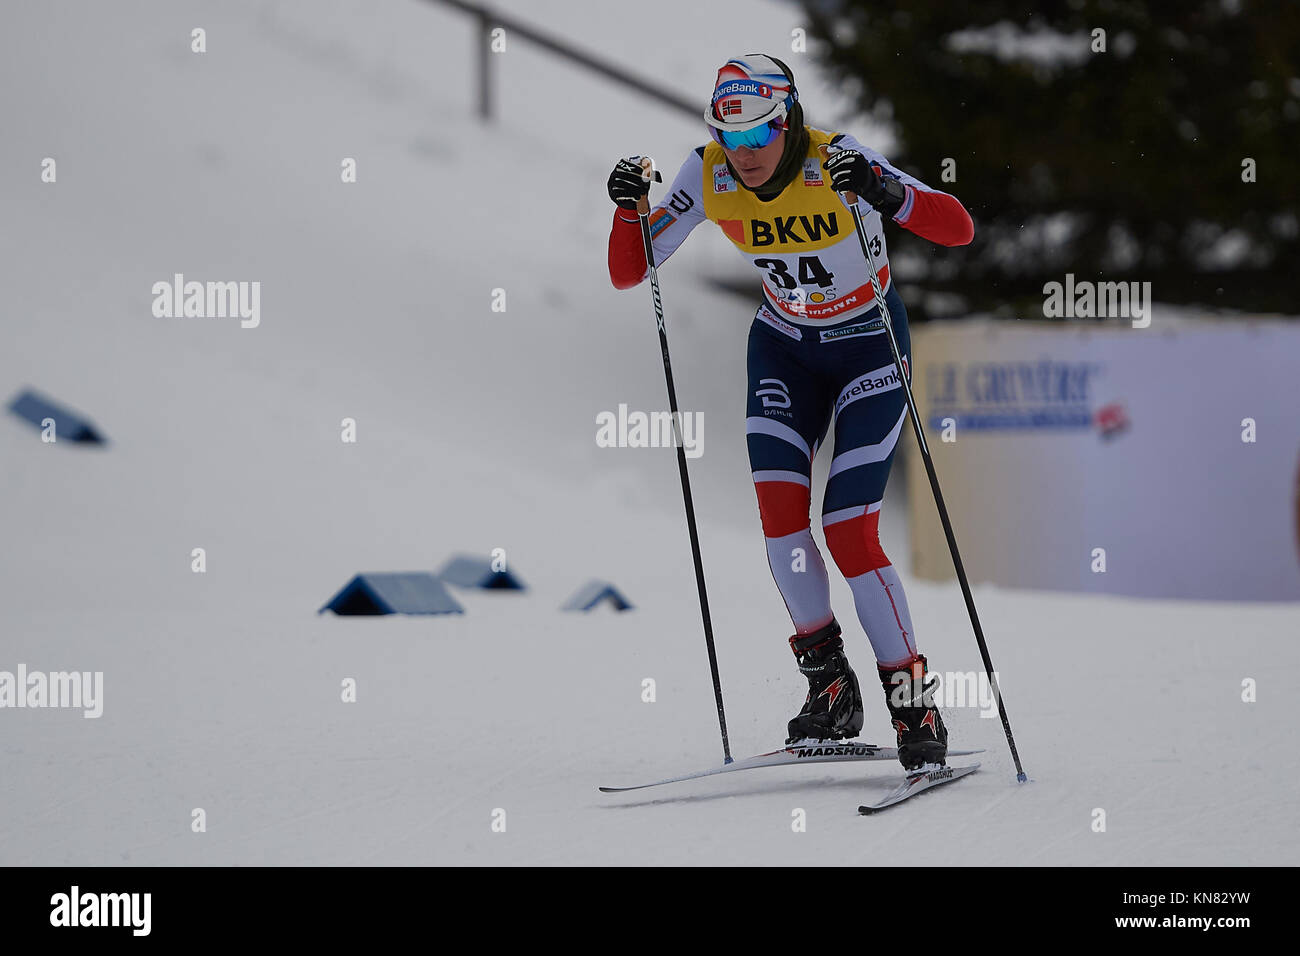 Davos, Switzerland, 10th December 2017. WENG Heidi (NOR) during the Ladies' 10 km F competition at the FIS Cross - Stock Image